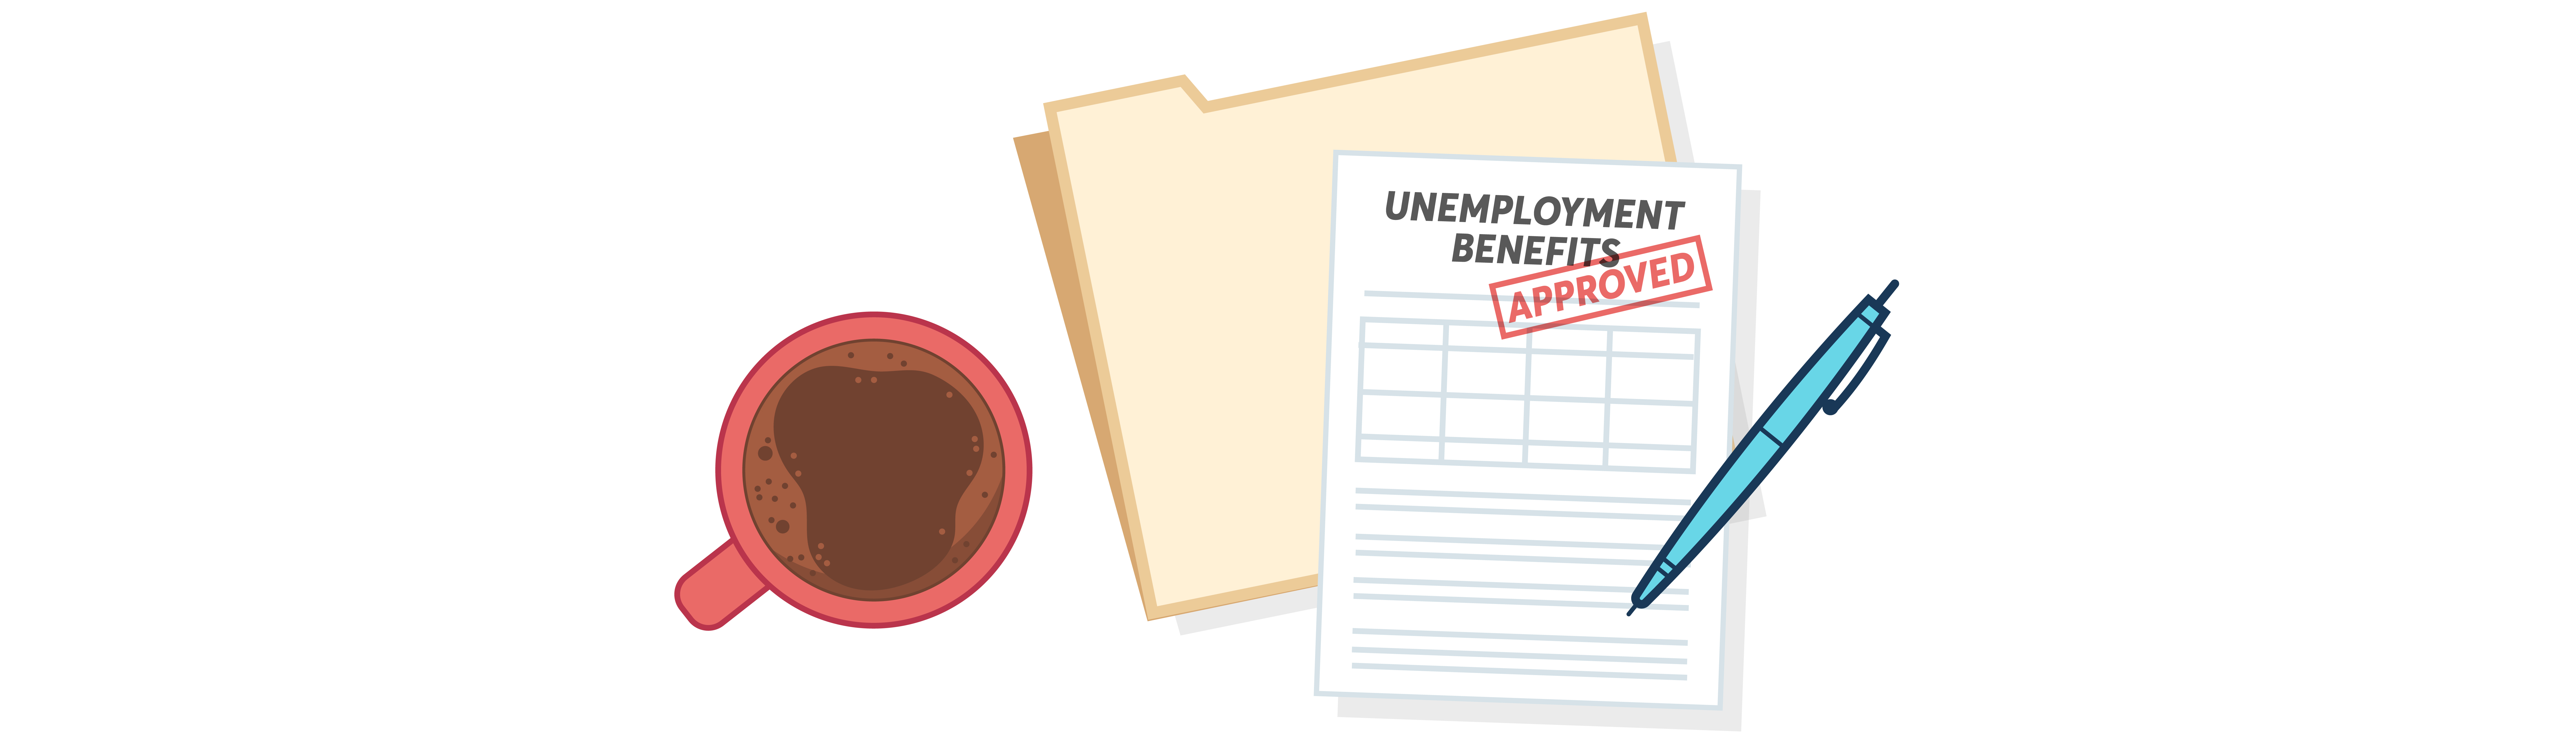 How self-employed people can apply for unemployment benefits